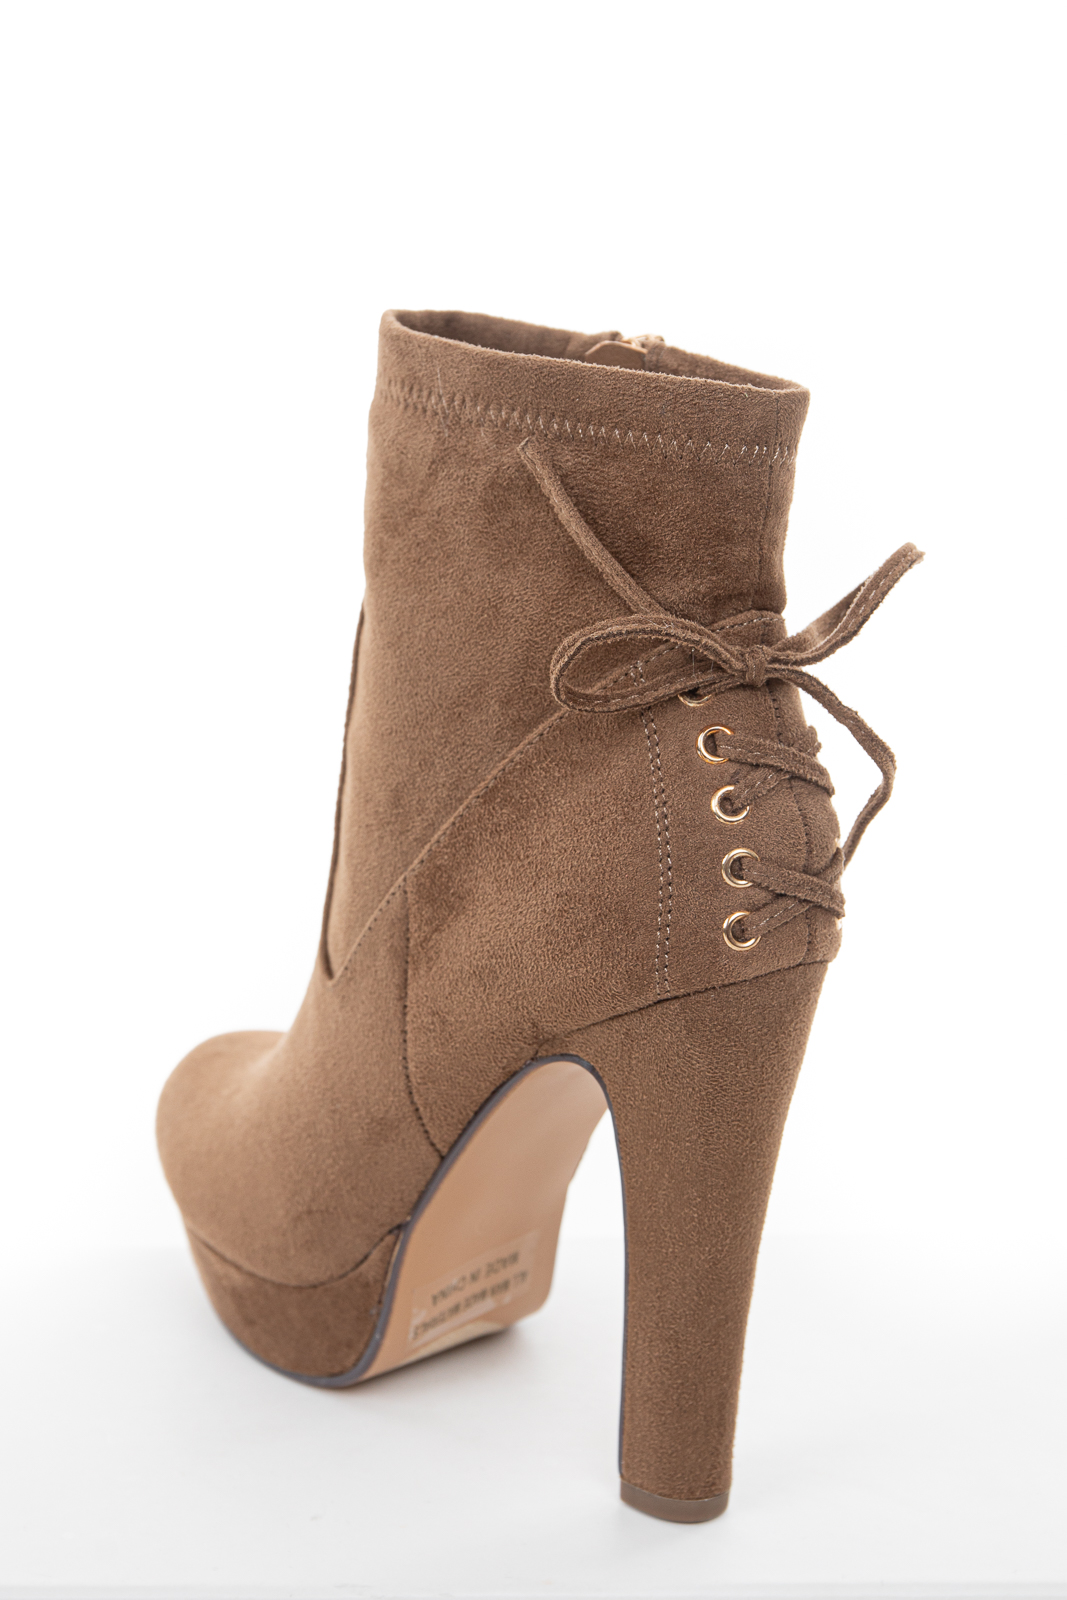 Light Walnut High Heel Zip Up Booties with Tie Detail